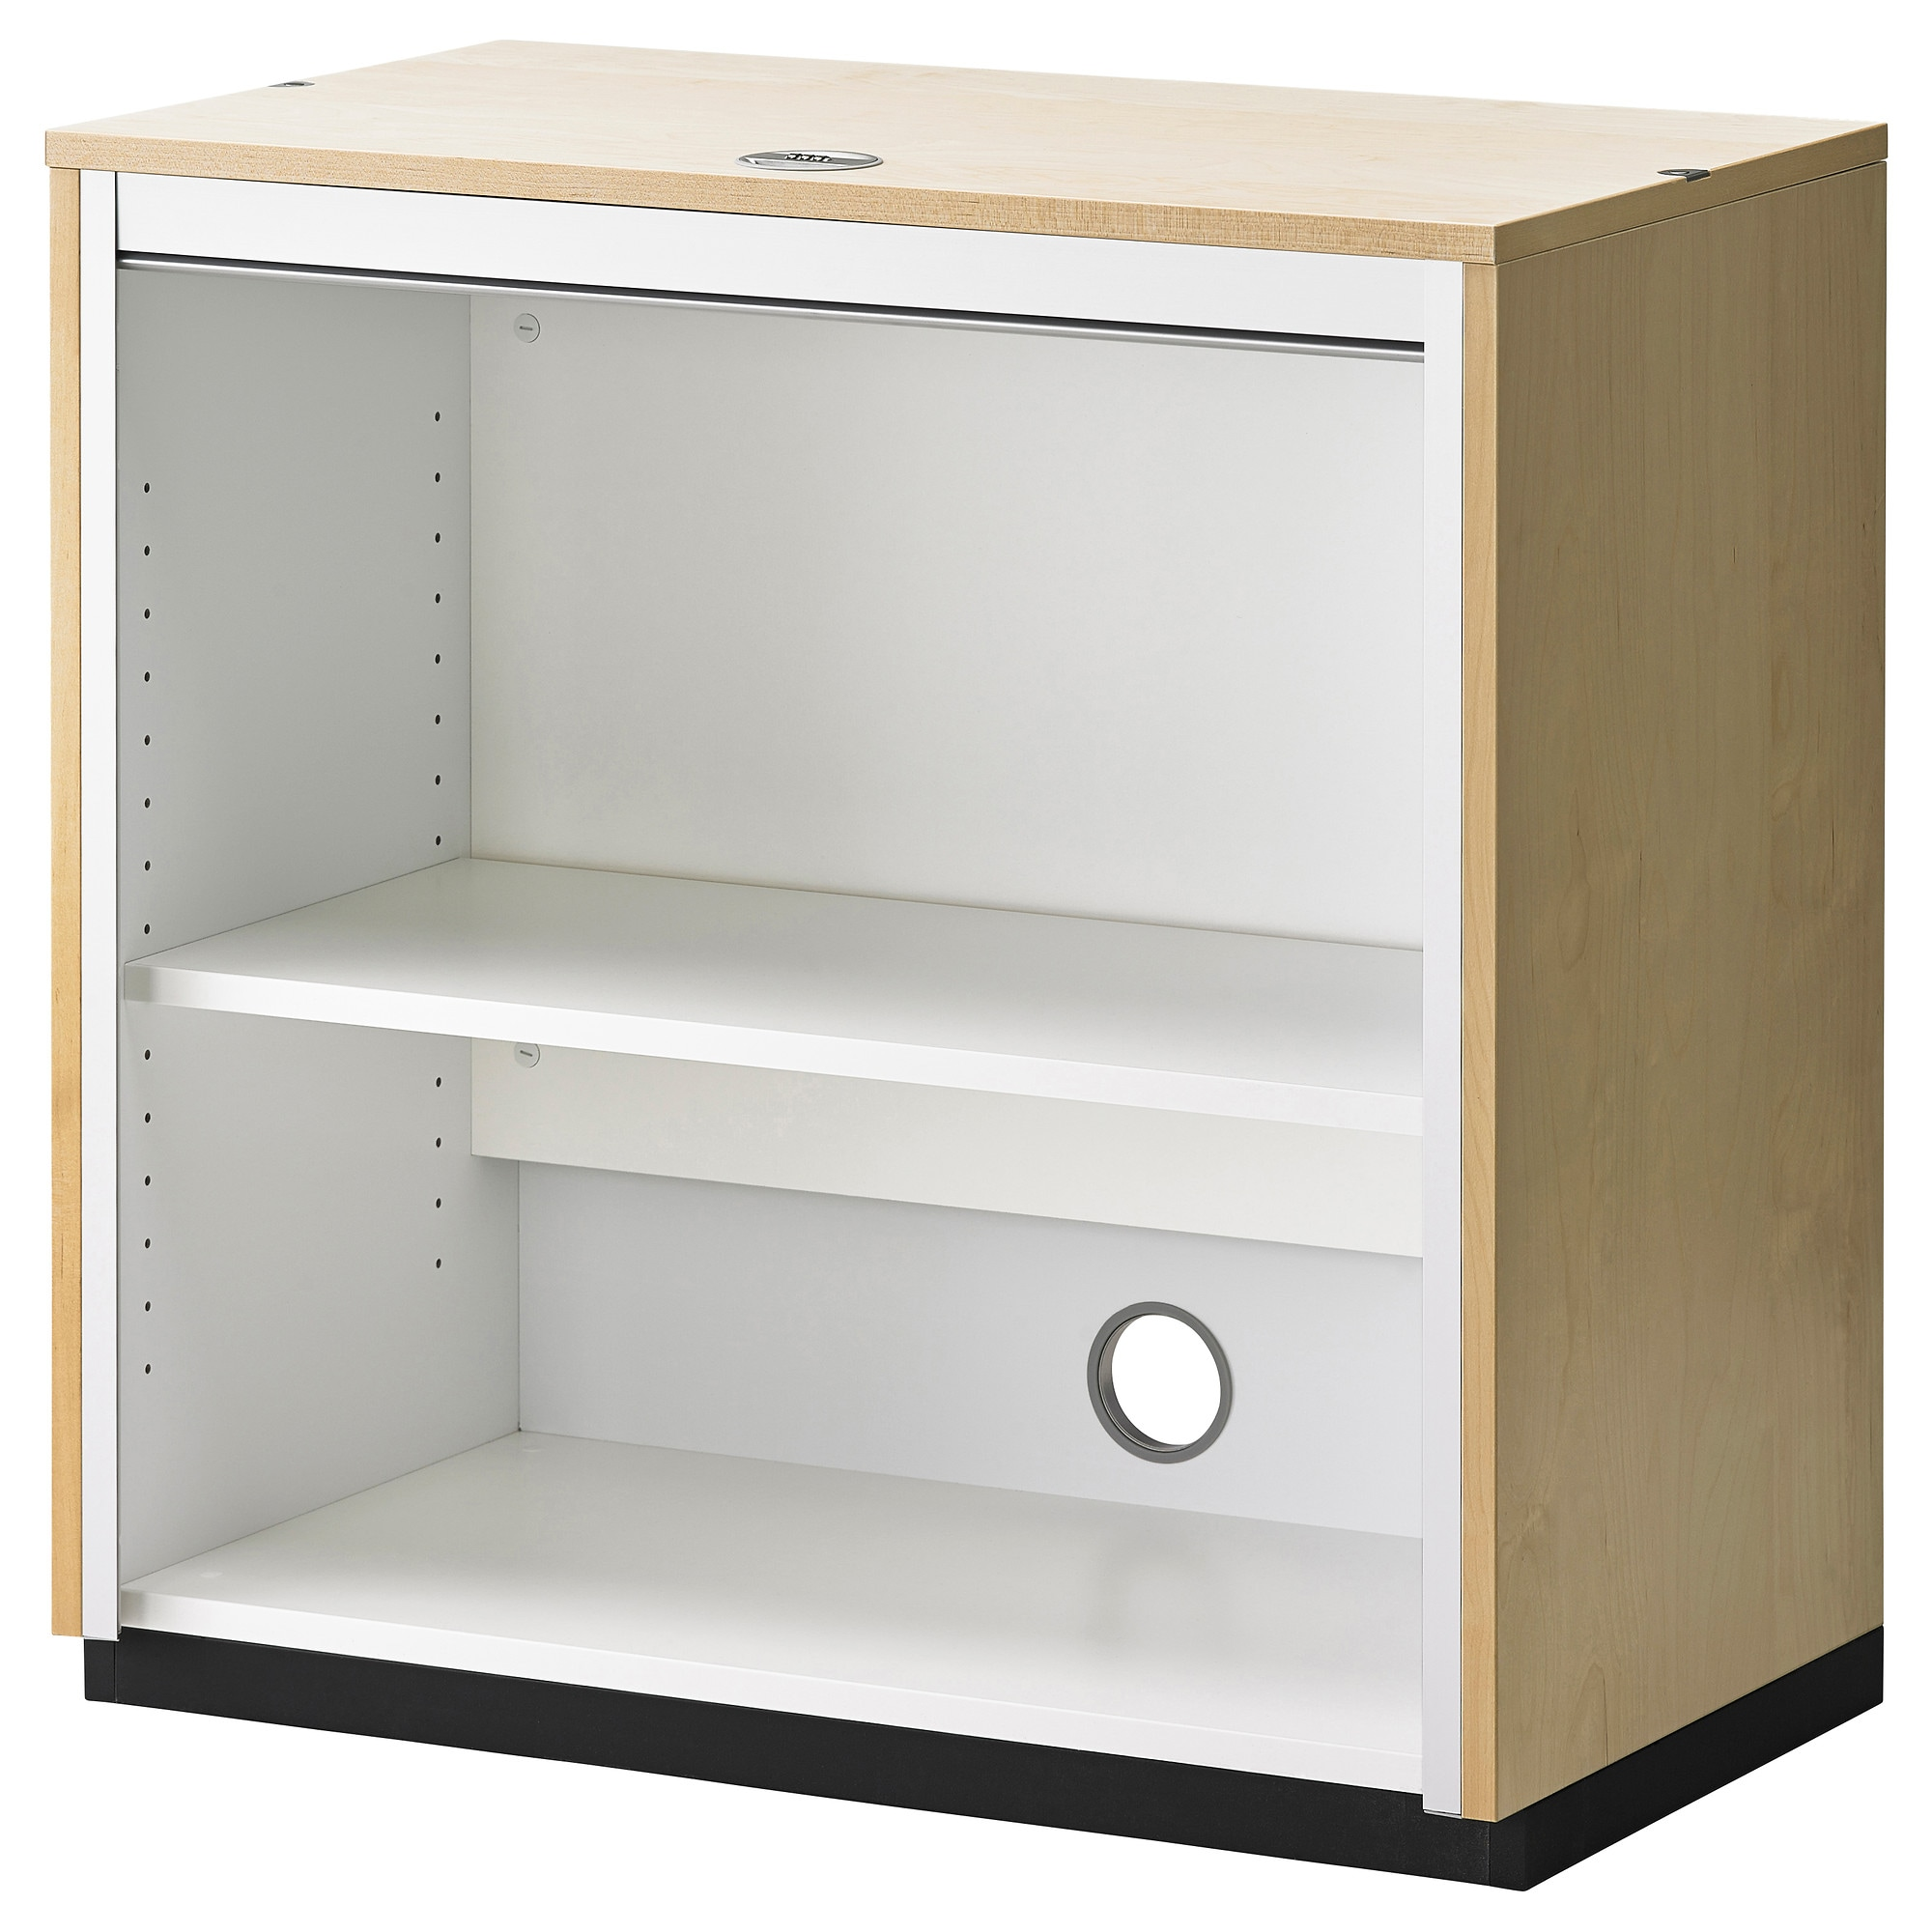 GALANT Roll-front cabinet - white - IKEA